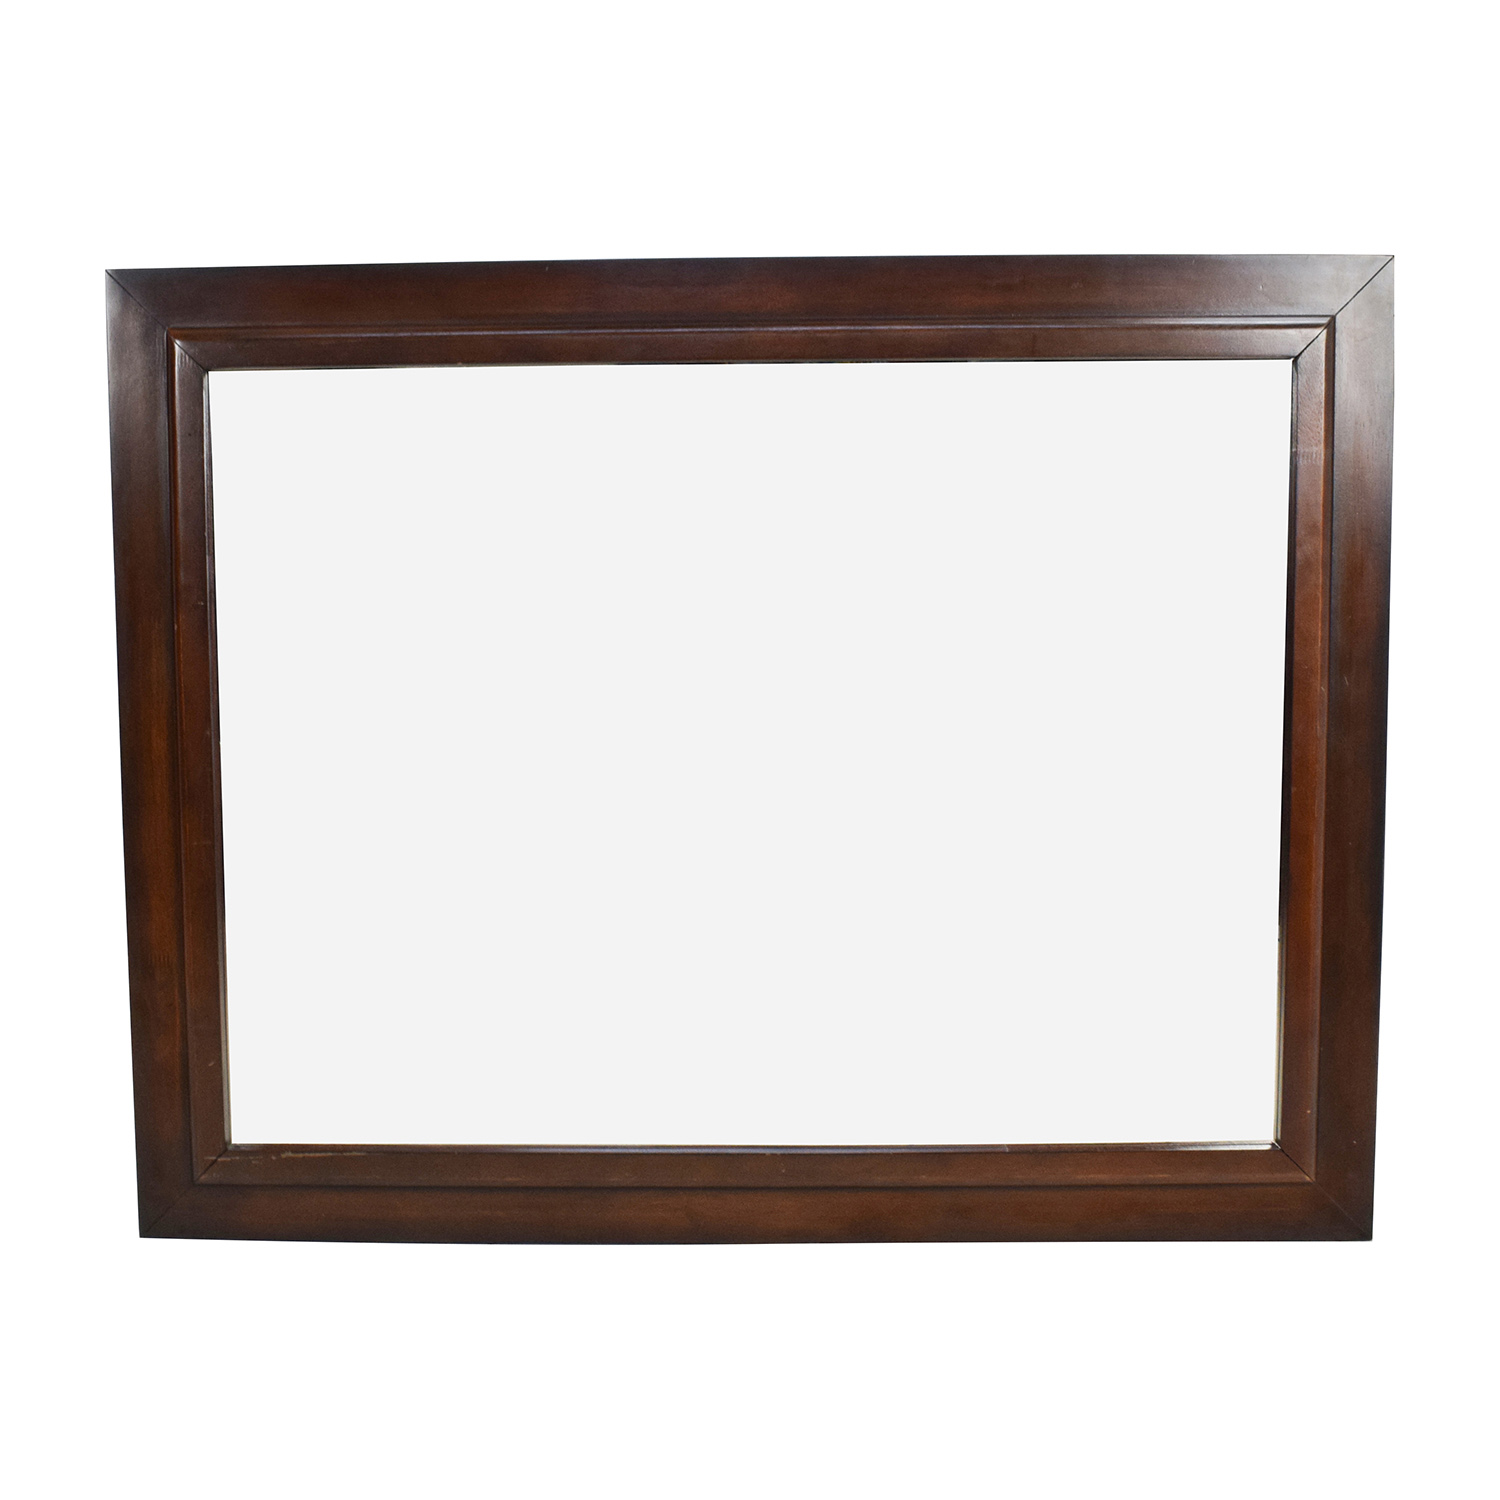 Wooden framed decorative wall mirror 80 off large square for Decorative wall mirrors